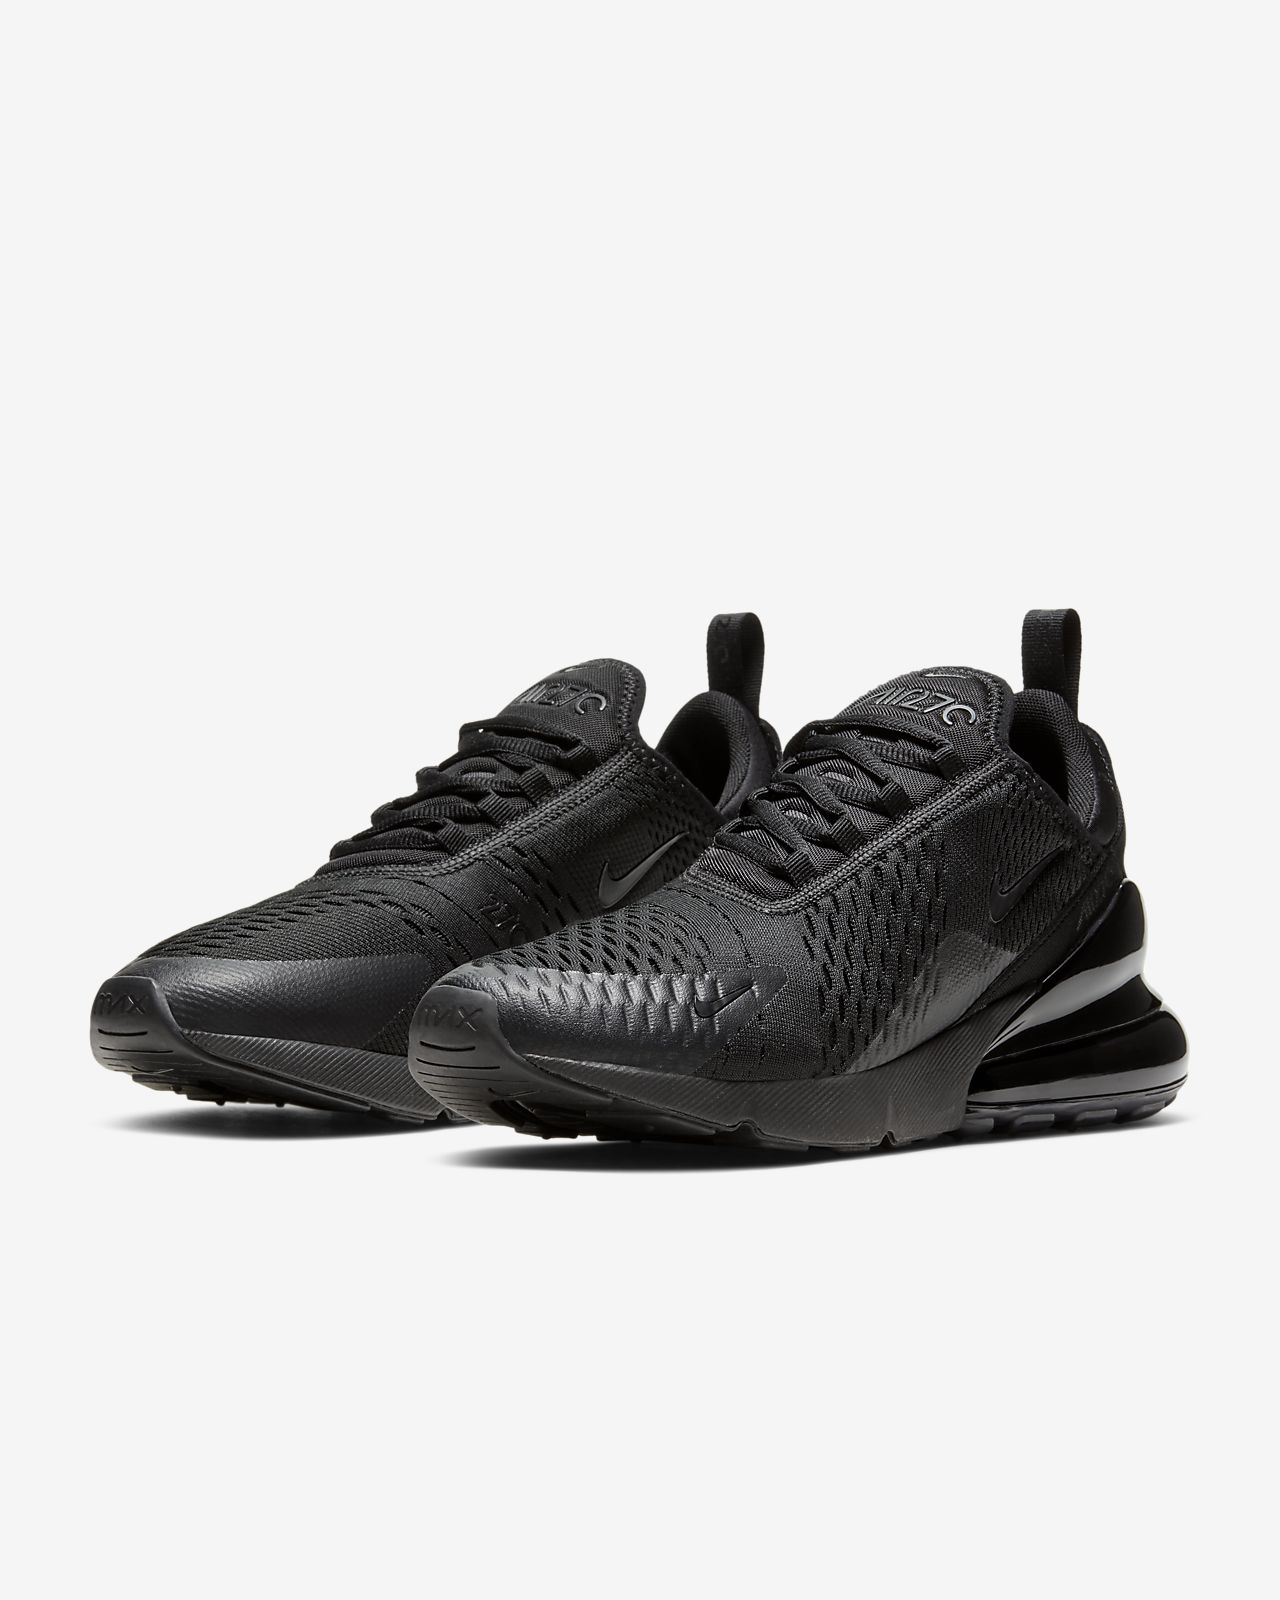 738f7a711864 Nike Air Max 270 Men s Shoe. Nike.com AU